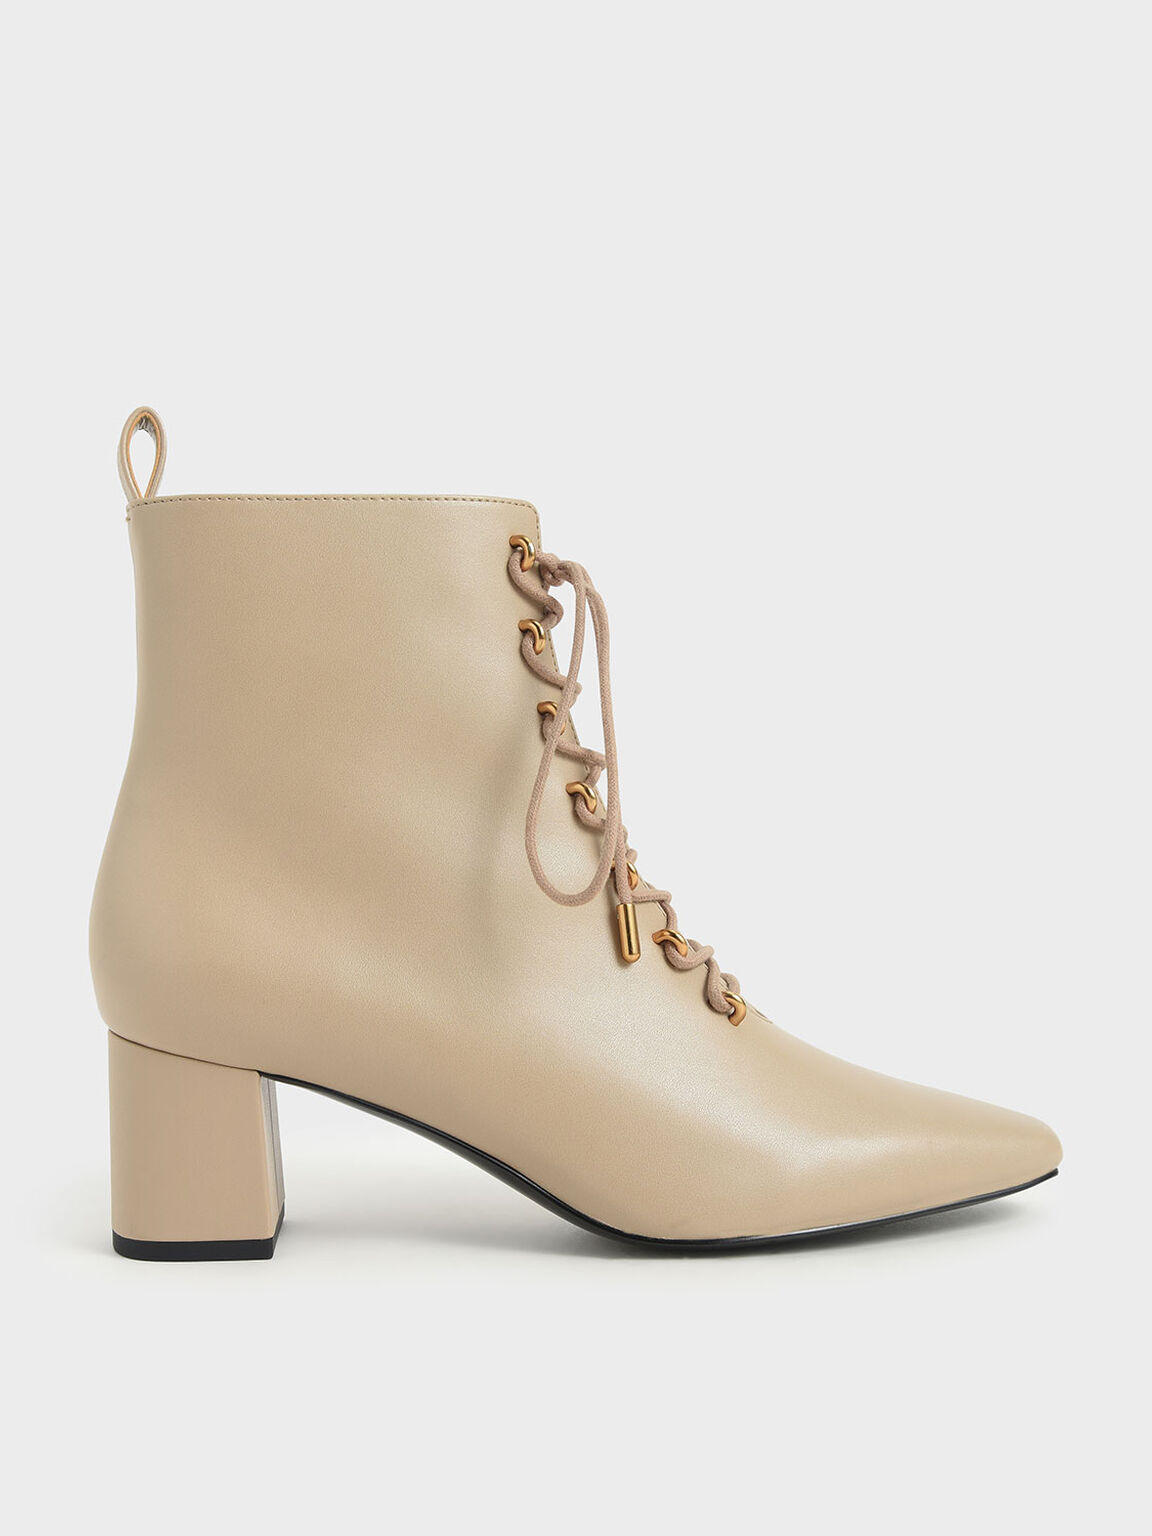 Metallic Lace-Up Ankle Boots, Beige, hi-res